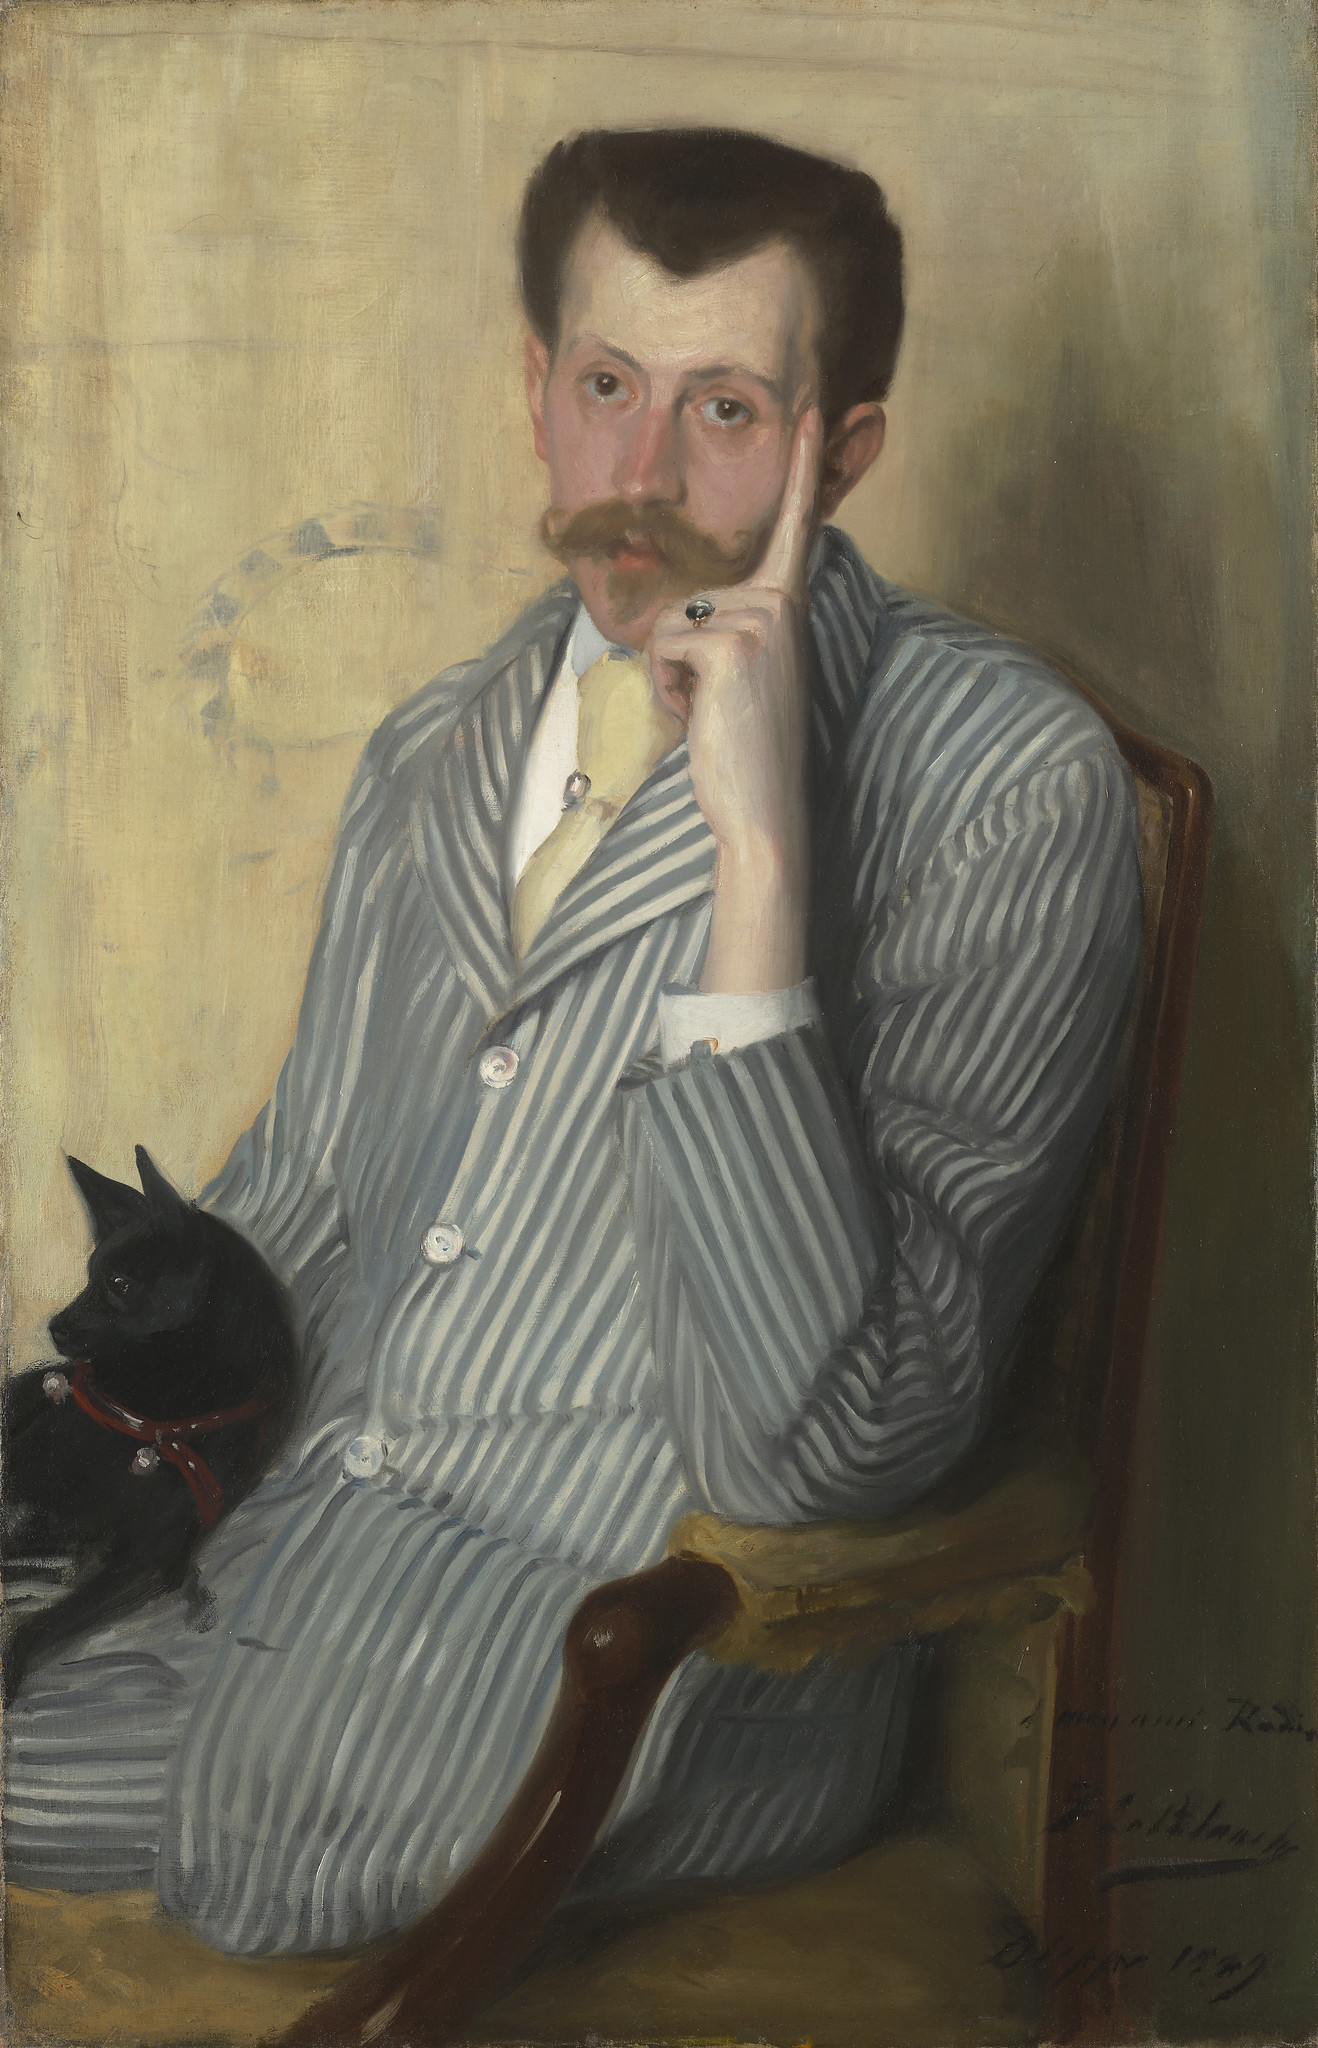 Georges Porto-Riche by Jacques-Emile Blanche, 1889